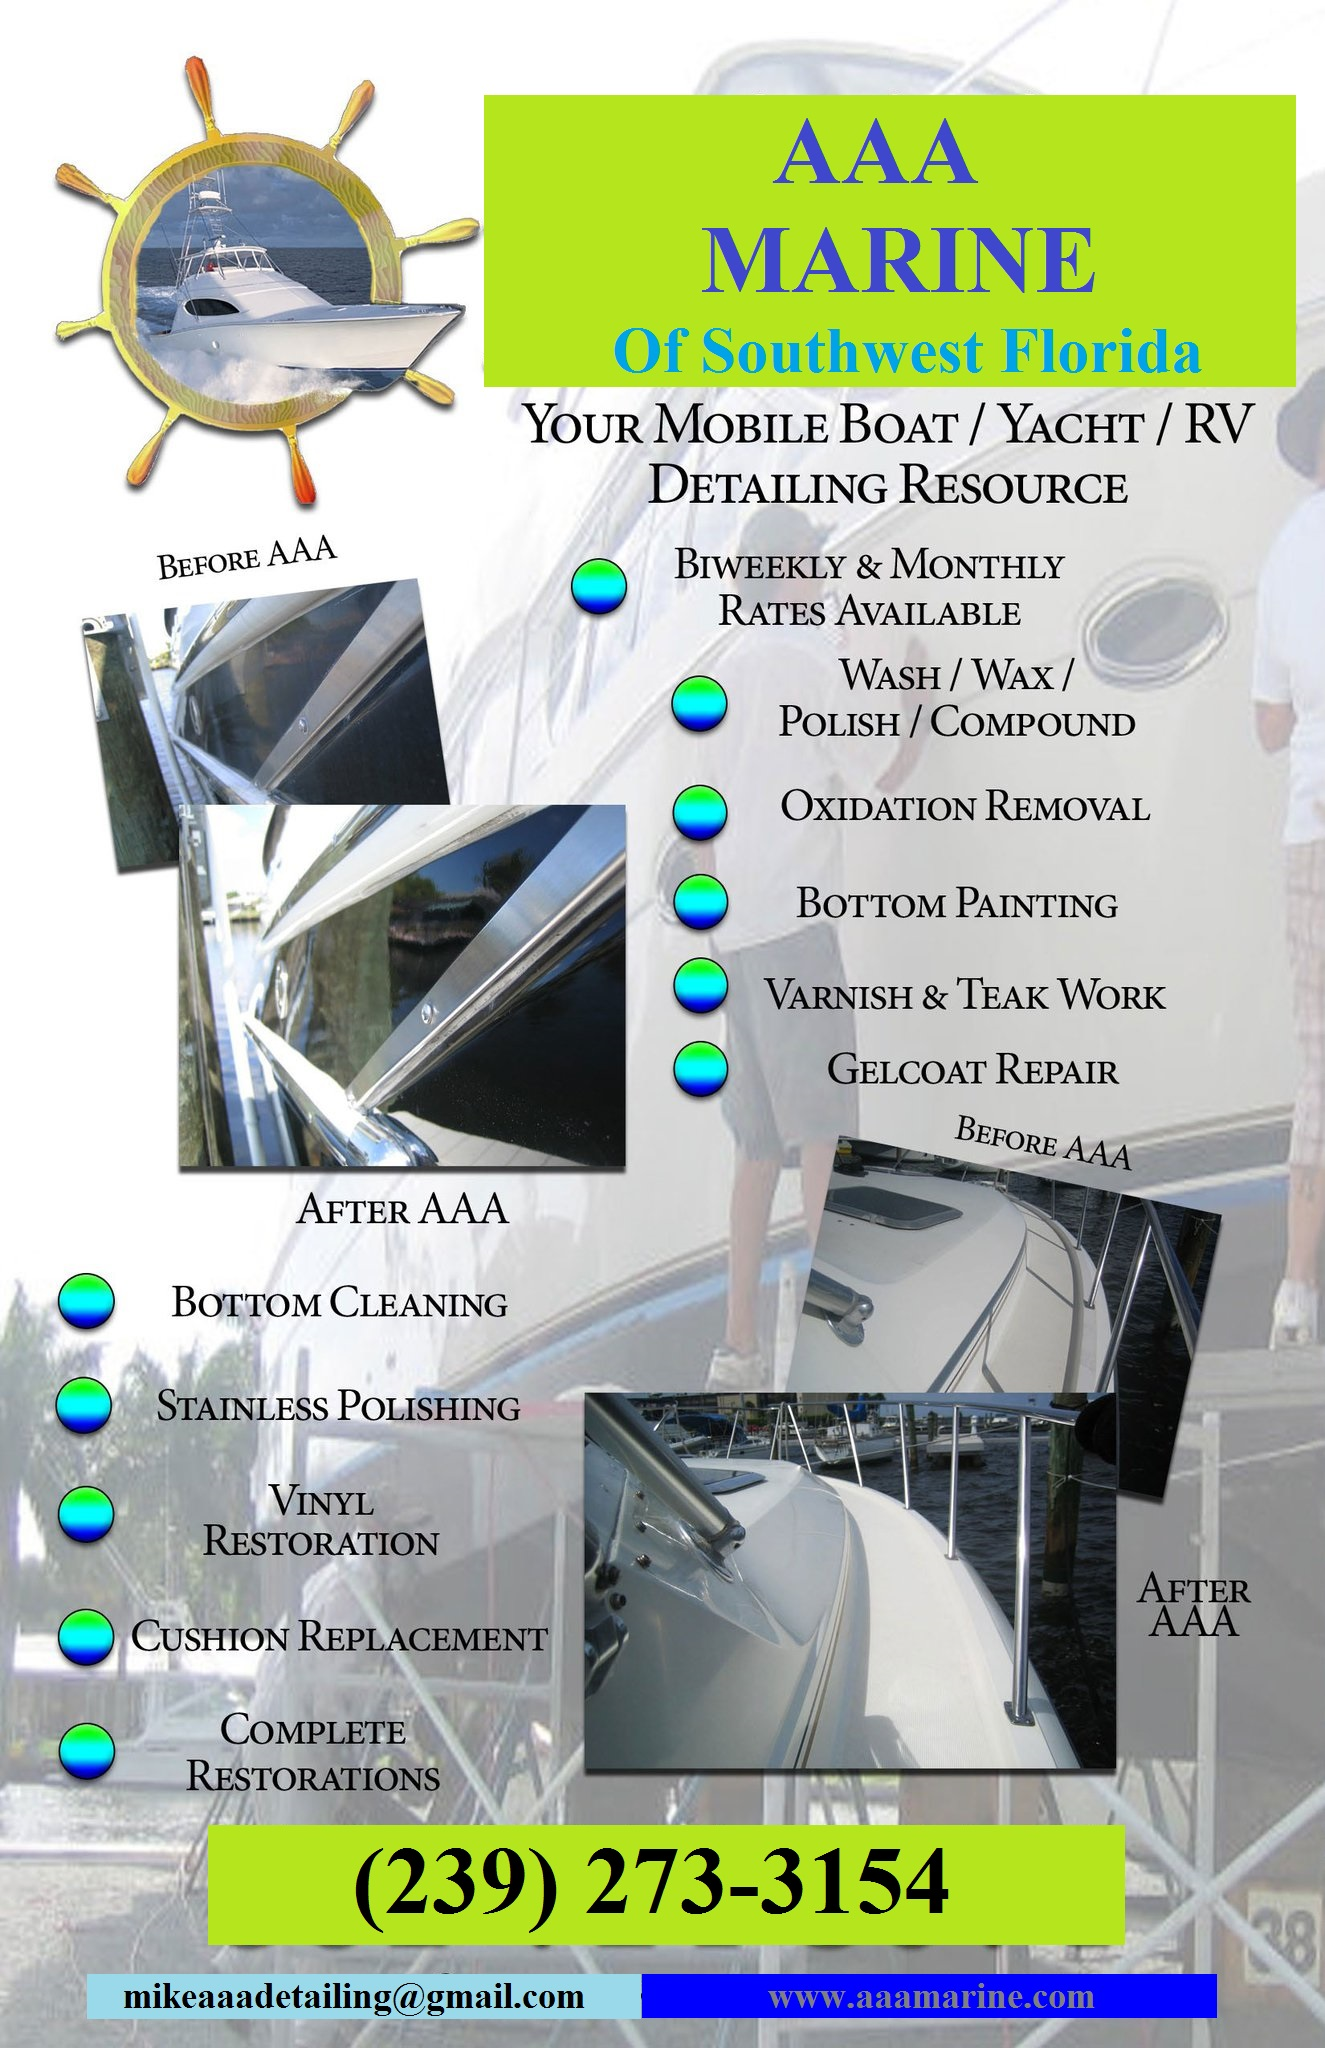 AAA Marine Inc Of Southwest Florida AAA Marine Inc Offers Affordable And Professional Boat